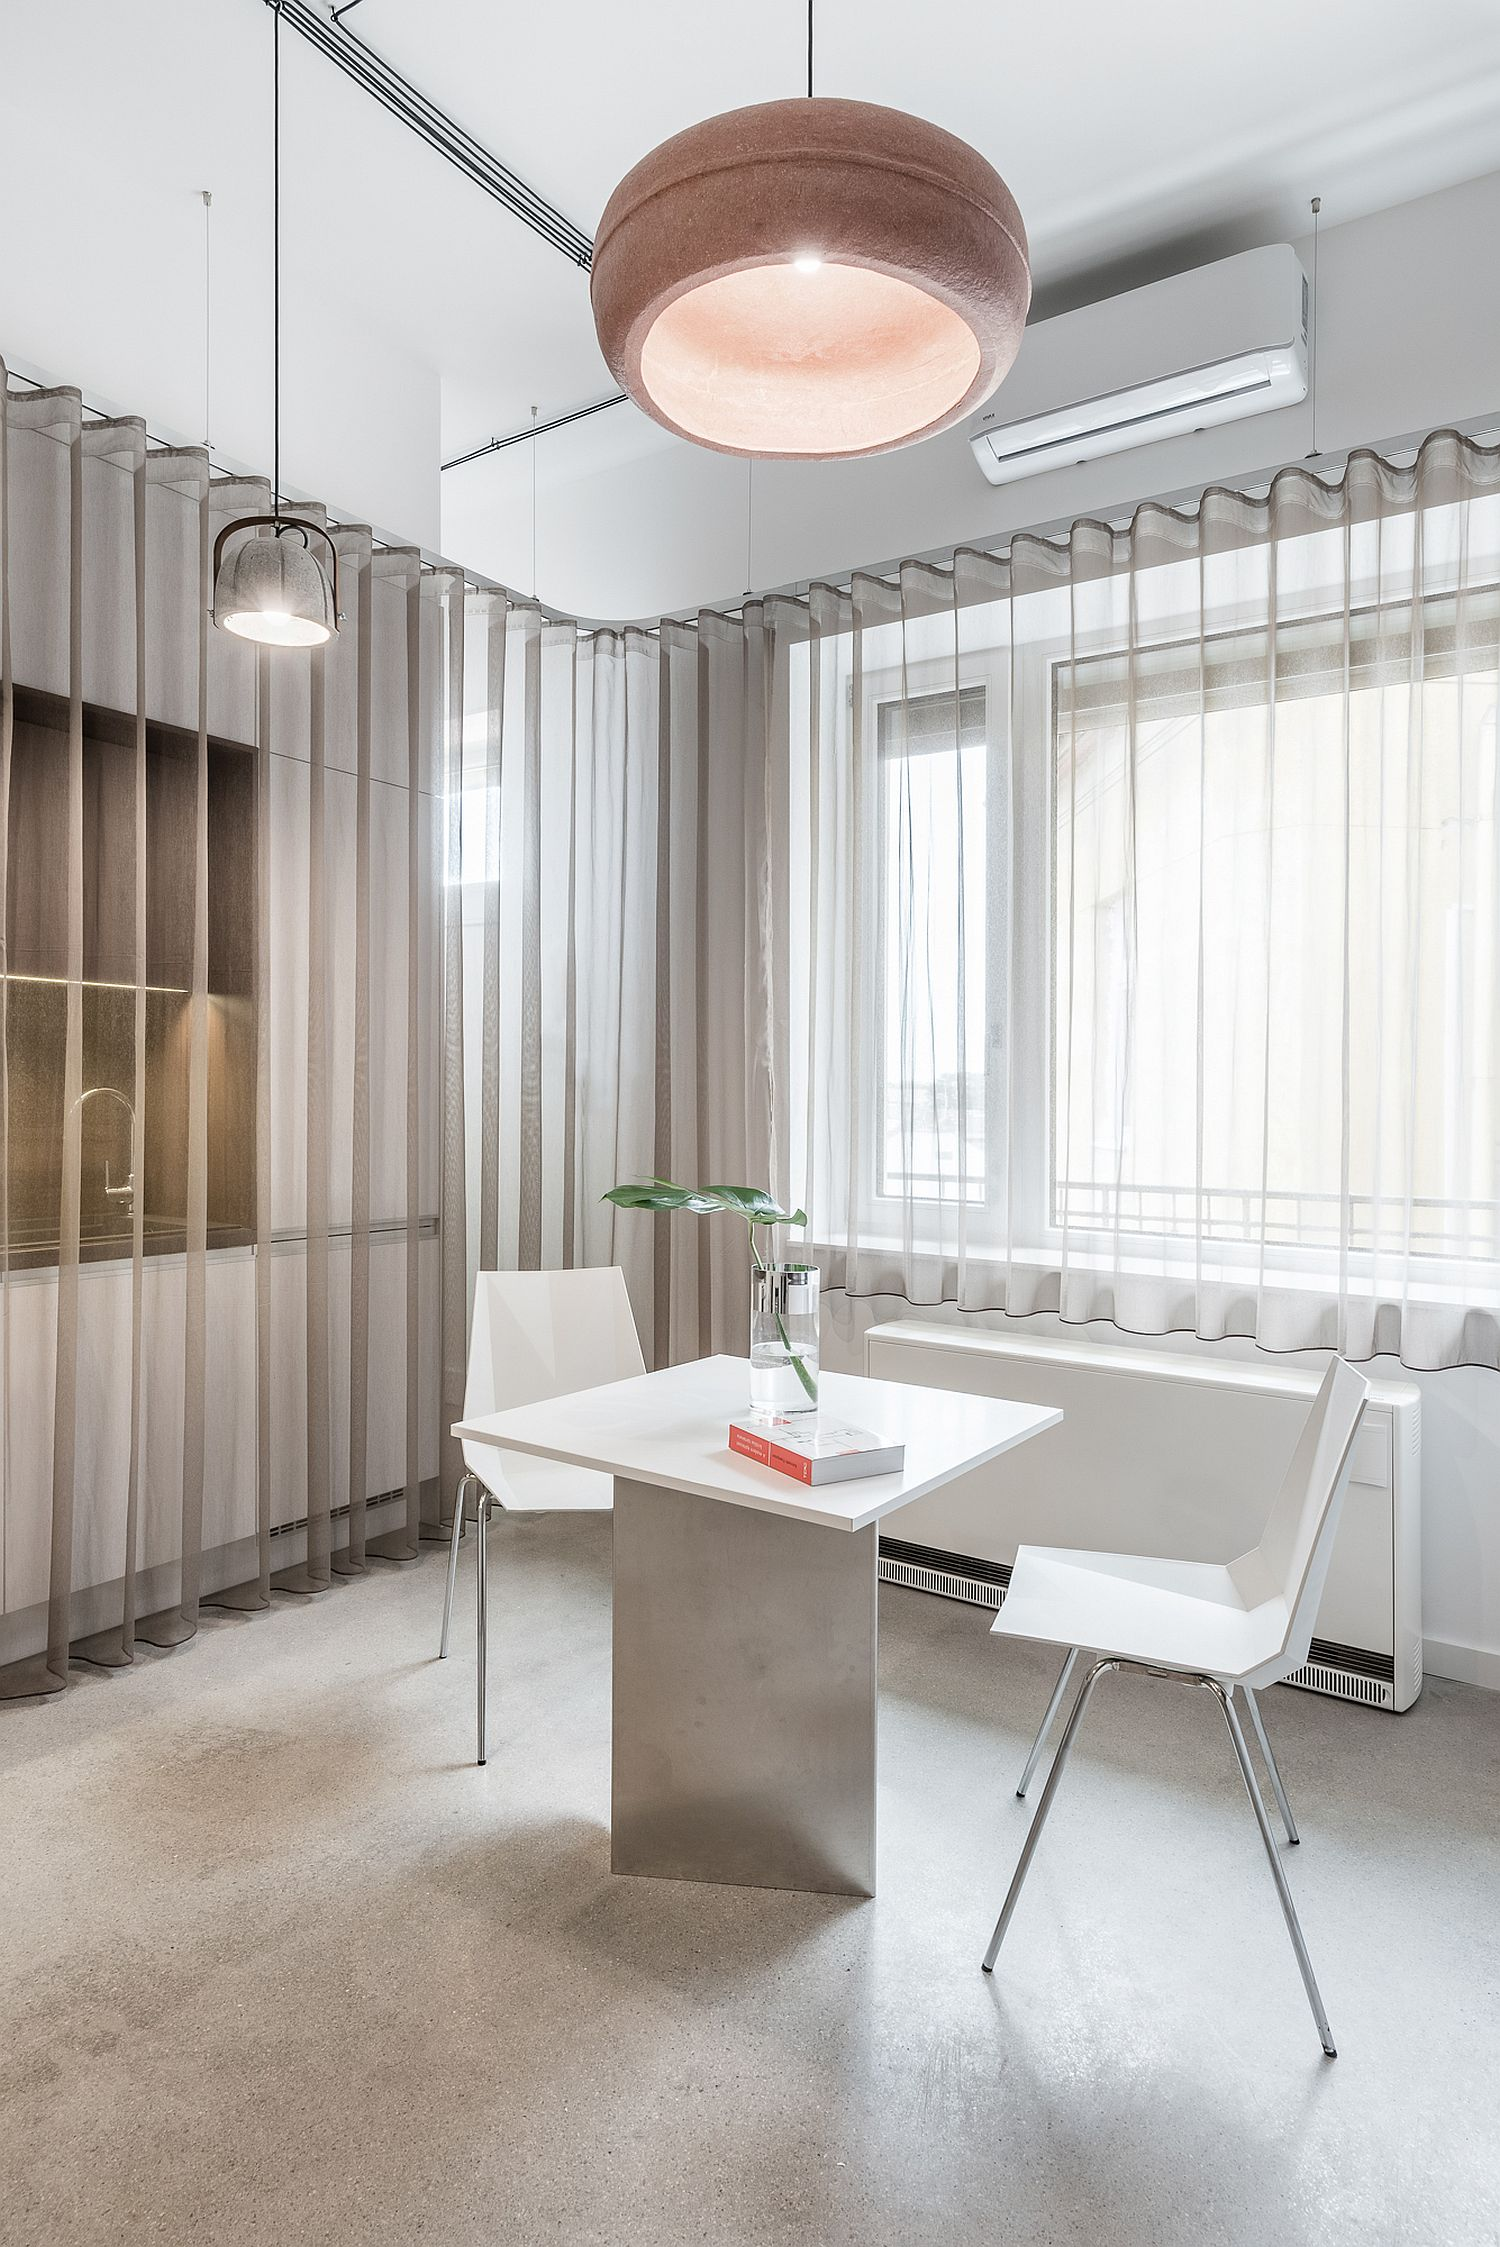 Soft gray drapes add warmth to the polished interior with ease